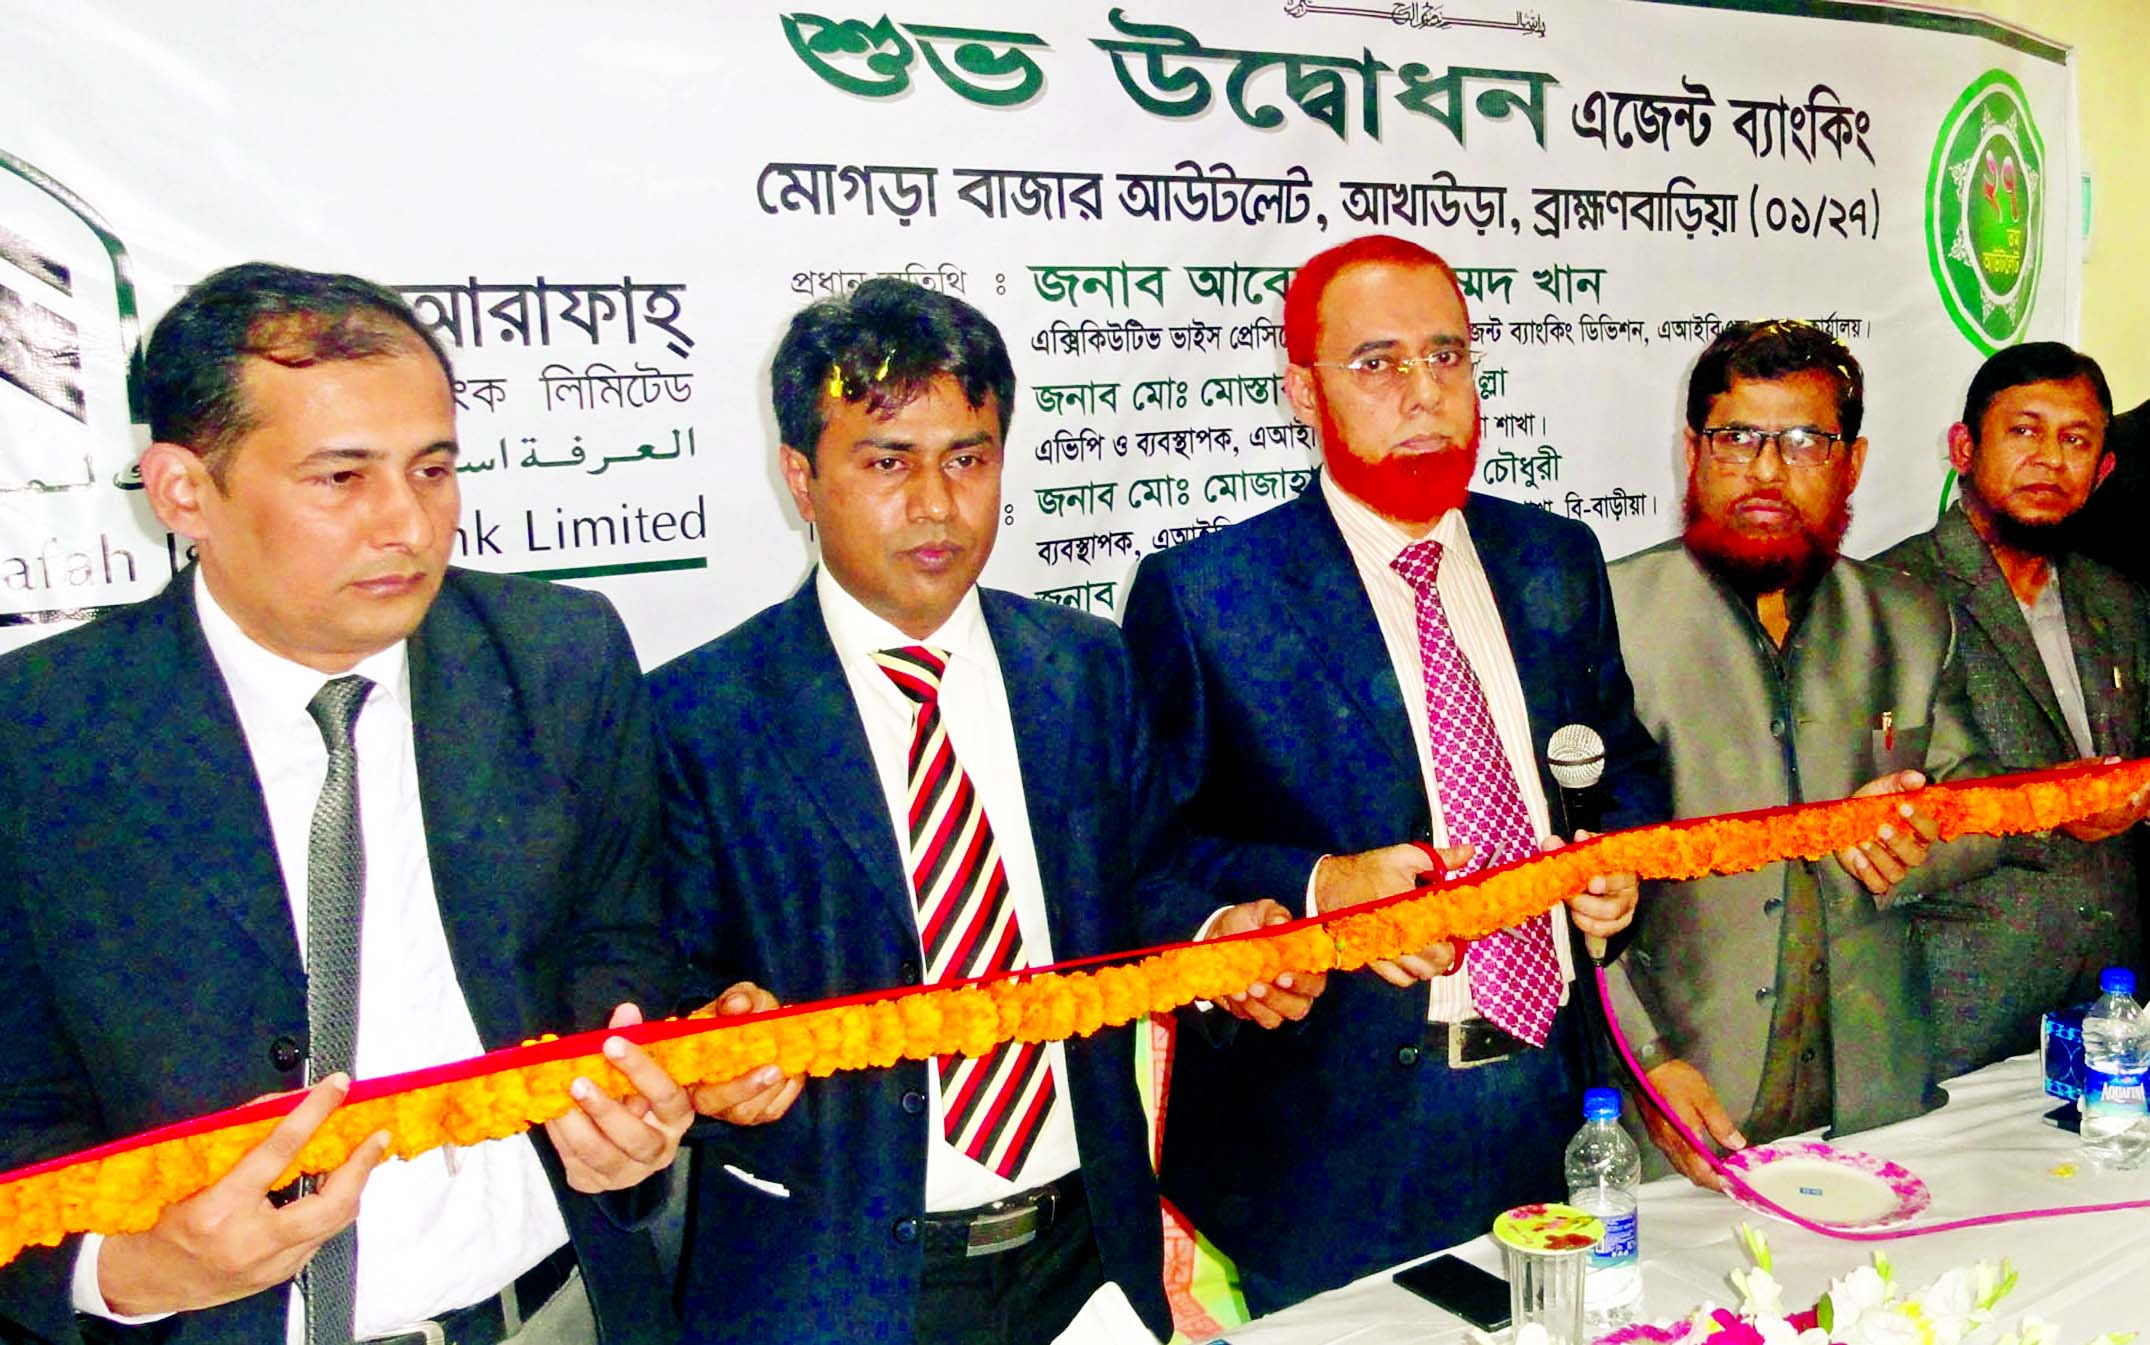 Bank Islam Outlet Albl Inaugurates Agent Outlets At Brahmanbaria Comilla